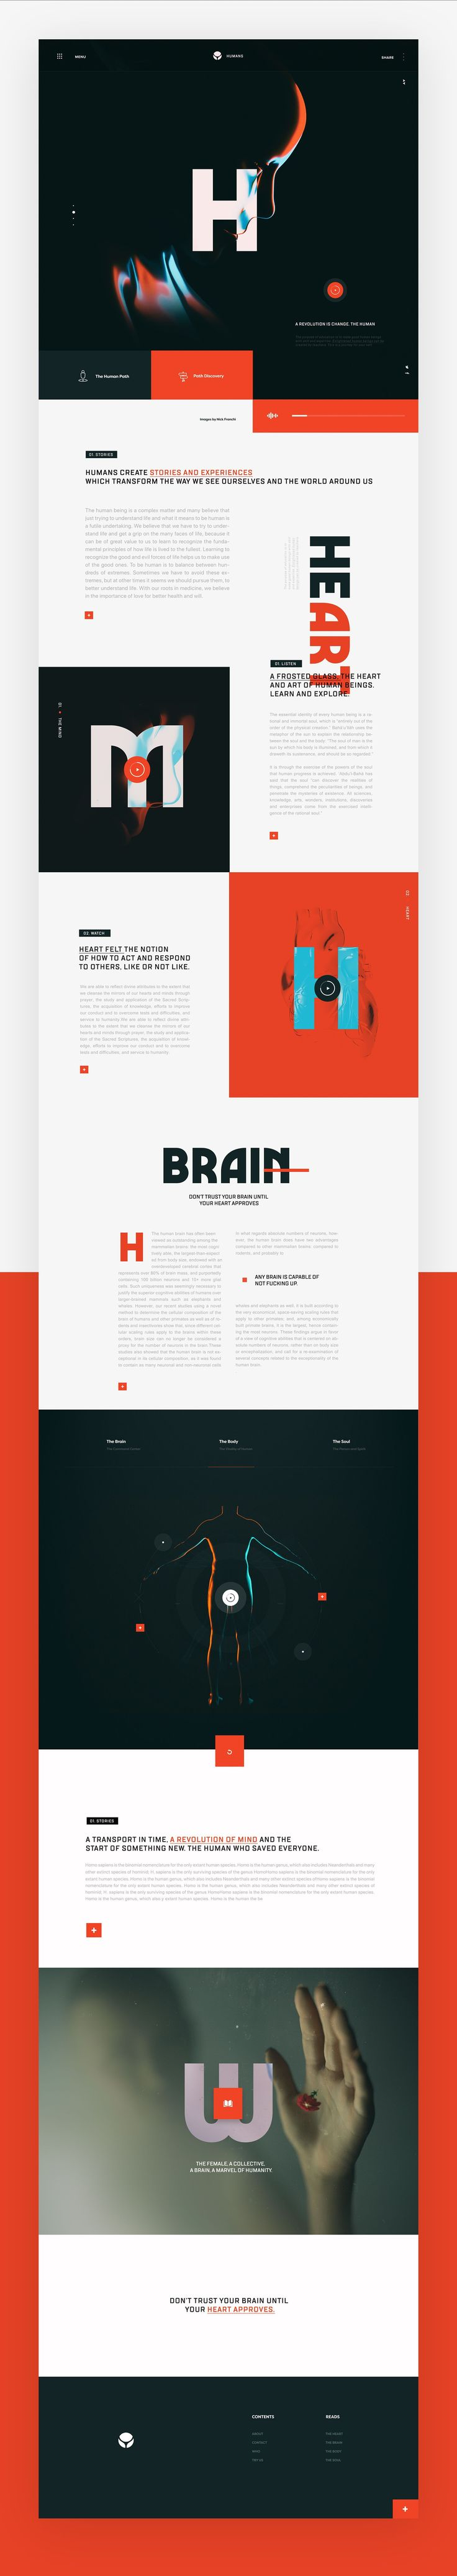 Humans – Ui design concept and visual identity by Nick Franchi. #MobileWebDesign